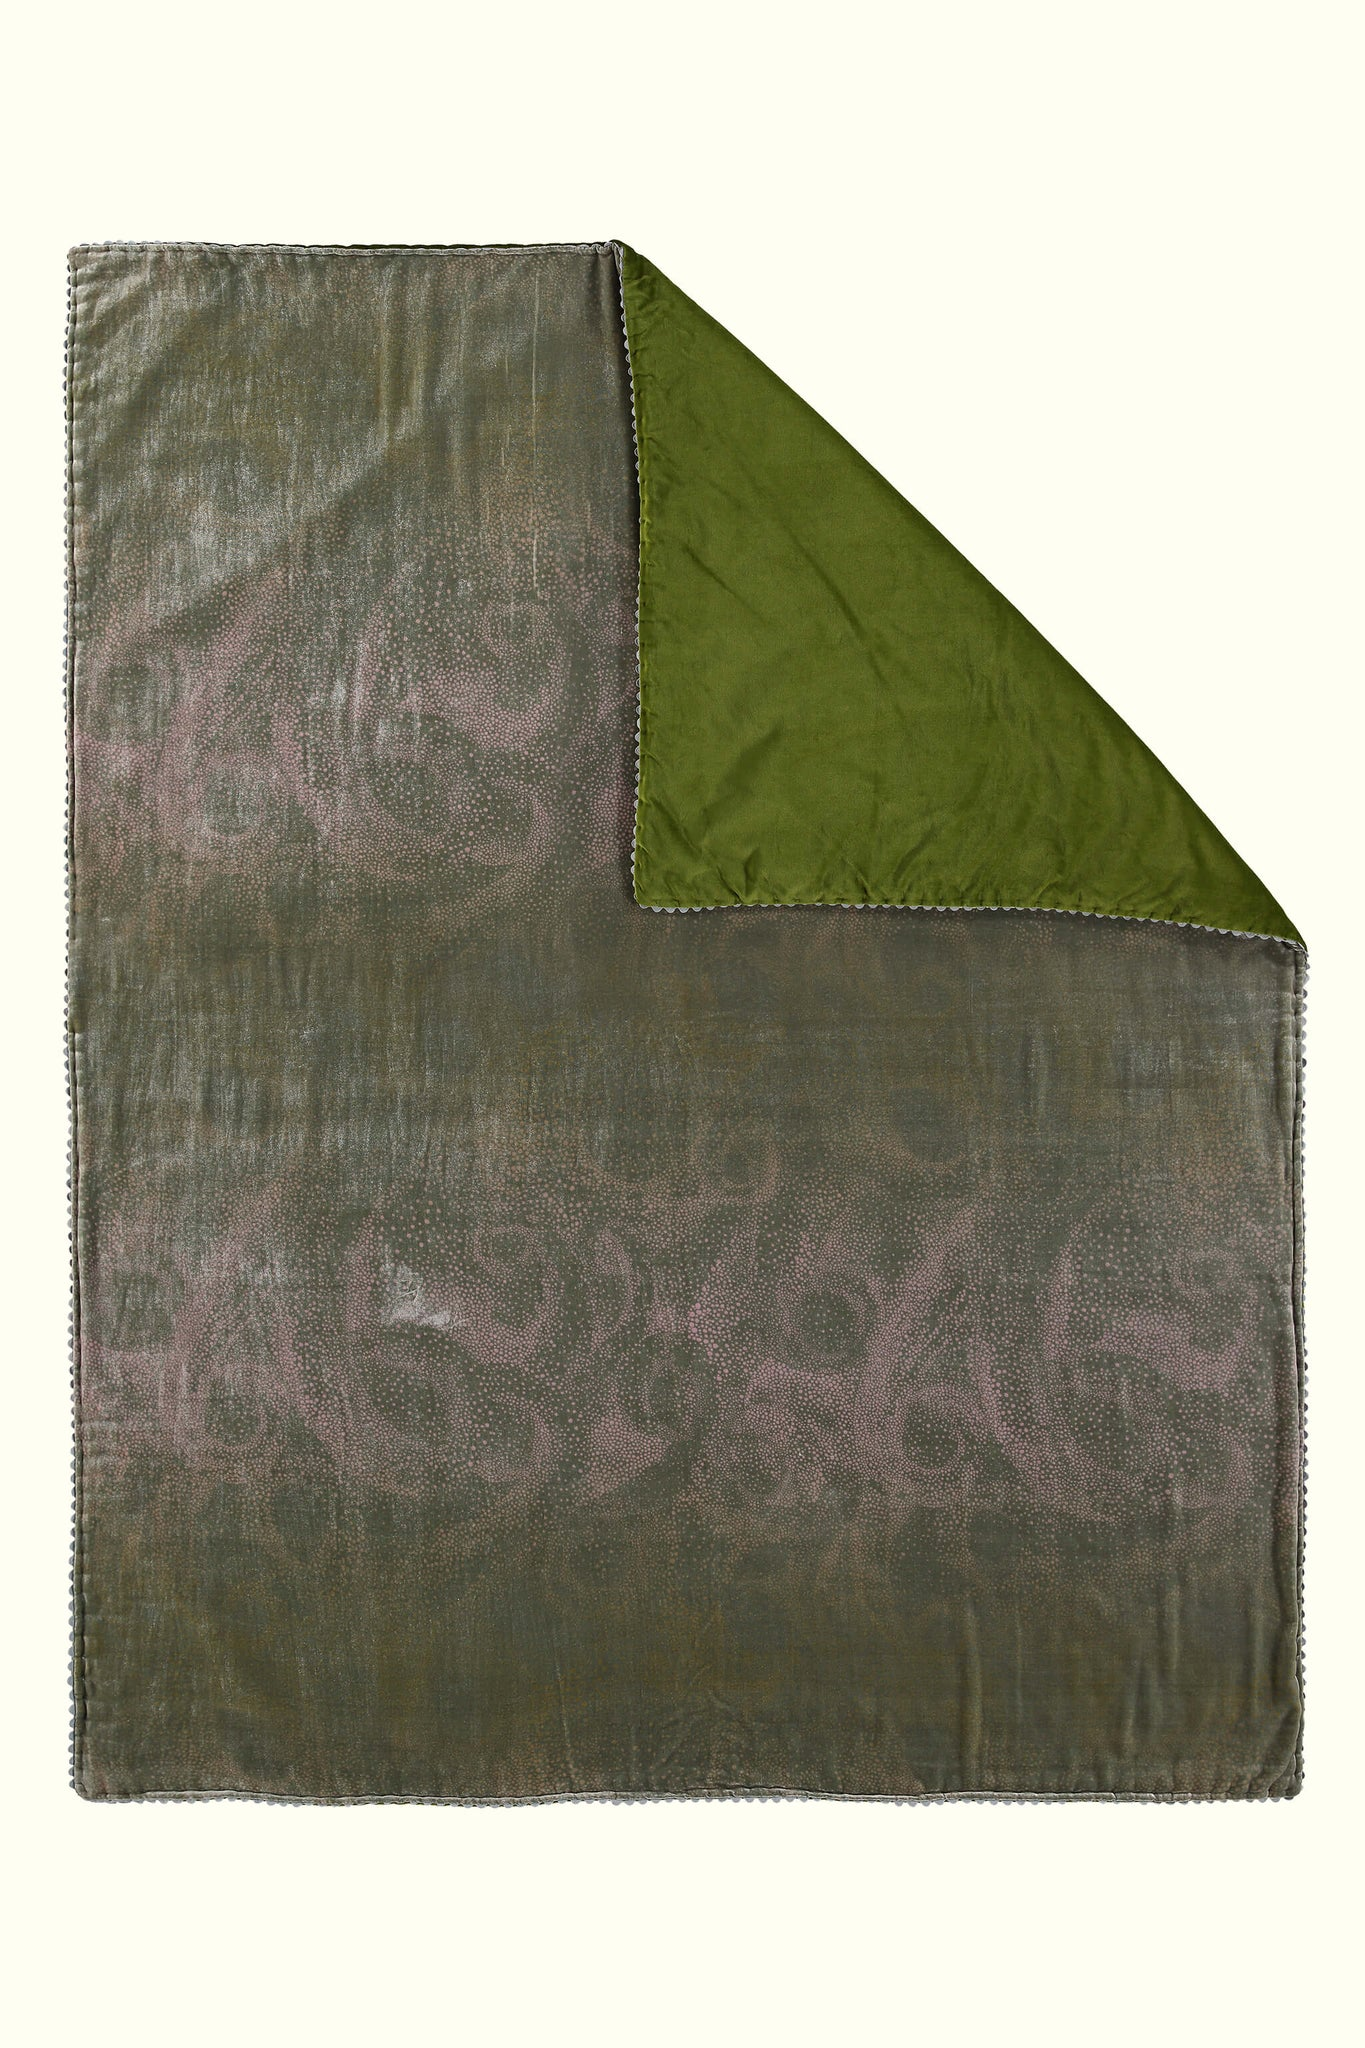 A luxury British silk velvet bed throw by GVE in olive and pink Aurora print design.